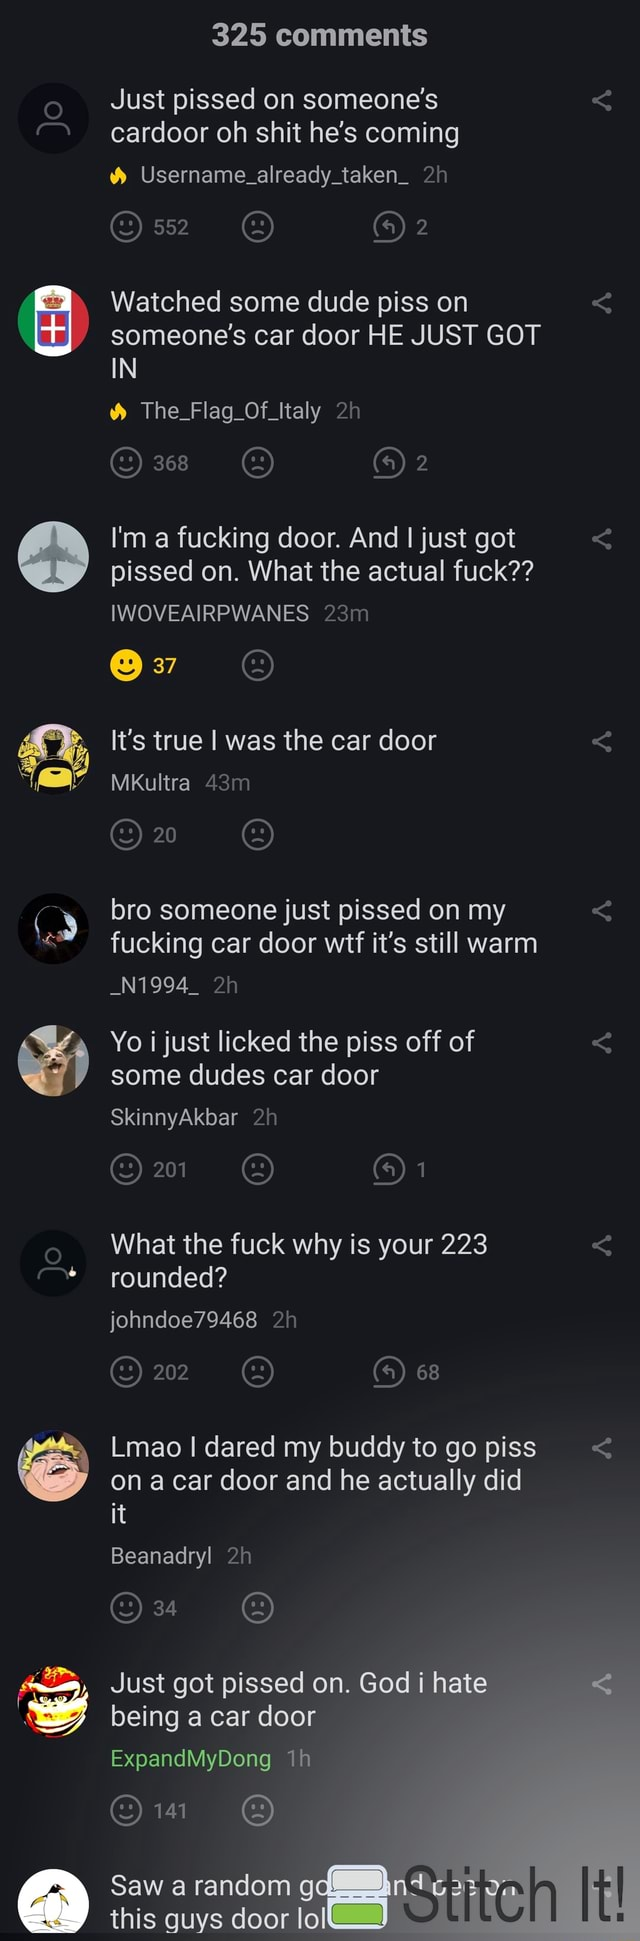 325 comments Just pissed on someone's cardoor oh shit he's coming Username already taken 552 Or Watched some dude piss on someone's car door HE JUST GOT GO IN The Flag Of Italy 368 4 I'm a fucking door. And I just got pissed on. What the actual fuck  IWOVEAIRPWANES It's true I was the car door MkKultra 20 bro someone just pissed on my fucking car door wif it's still warm Yo i just licked the piss off of some dudes car door N1994 SkinnyAkbar 201 On What the fuck why is your 223 rounded johndoe79468 22 68 Lmao I dared my buddy to go piss on a car door and he actually did it Beanadryl Just got pissed on. God i hate being a car door ExpandMyDong 141 Saw a random g It this guys door meme